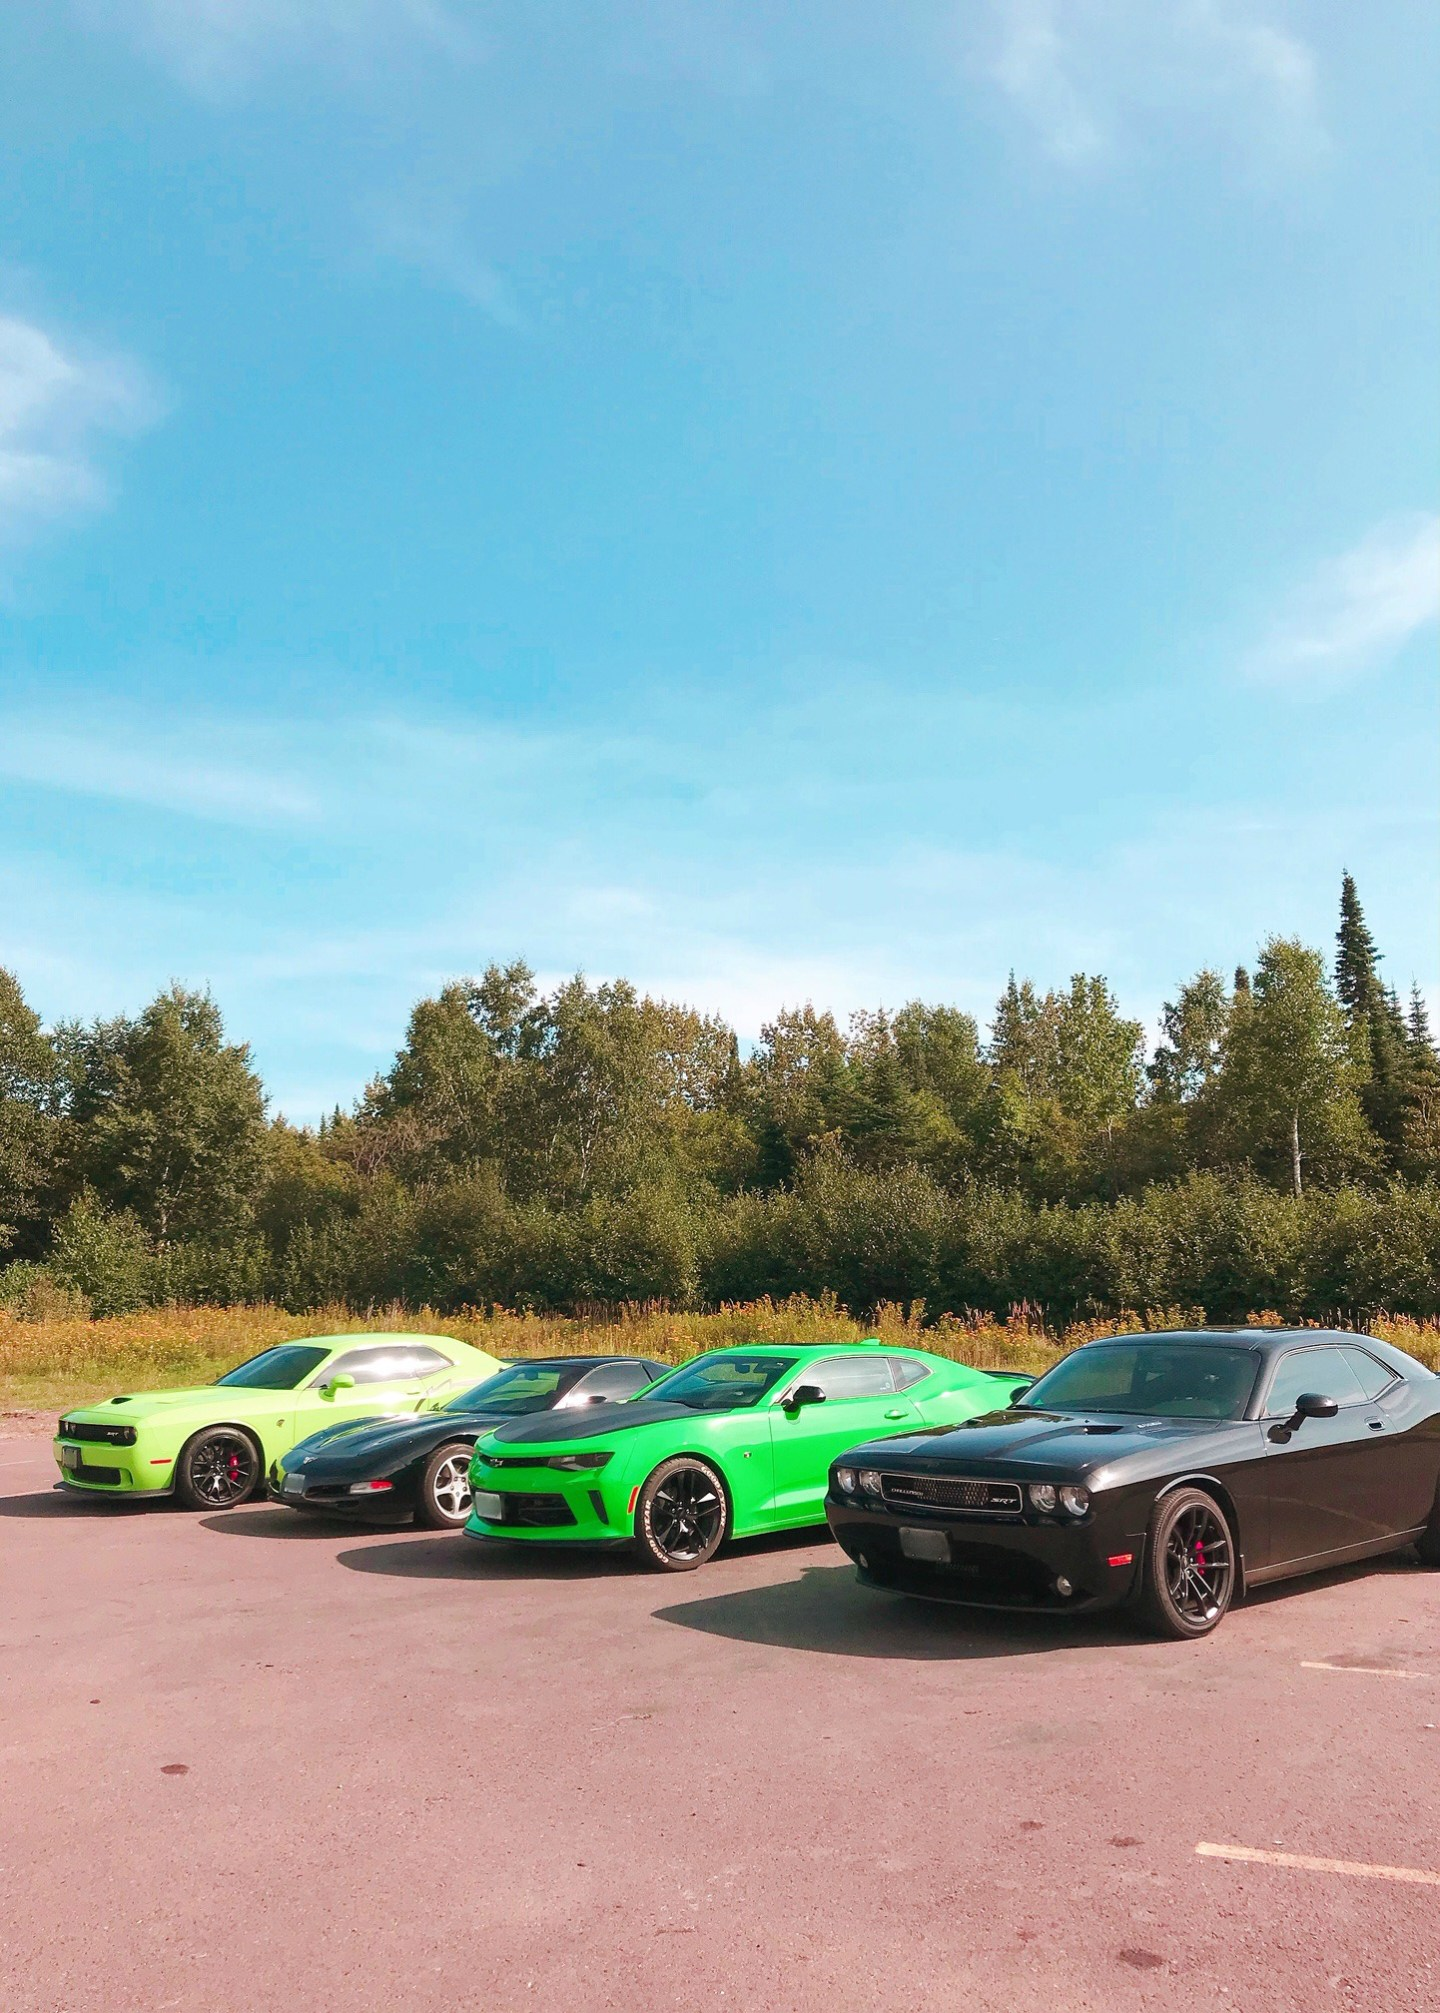 Hellcat, Corvette, Camaro and Challenger Lined Up